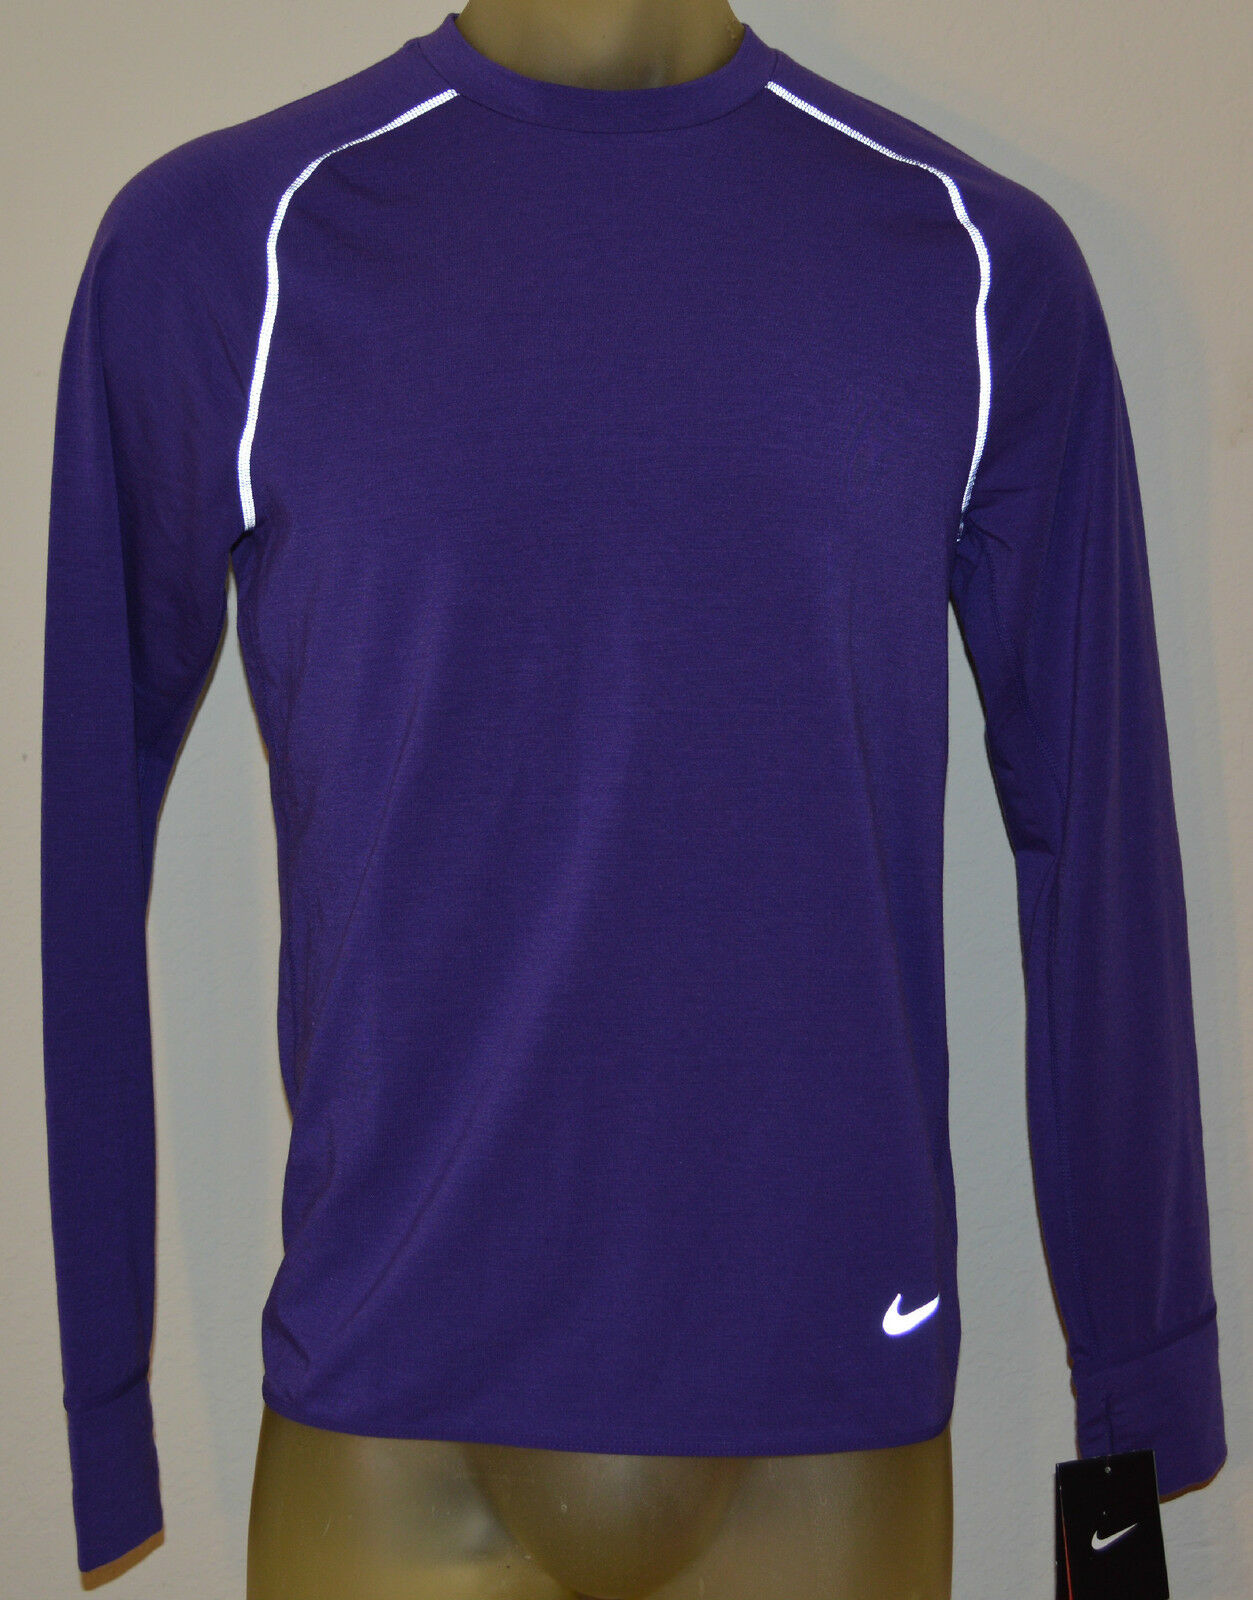 NEW NIKE SPRINT CREW PURPLE REFLECTIVE MENS M RUNNING LONG  SLEEVE SHIRT 598973  wholesale prices